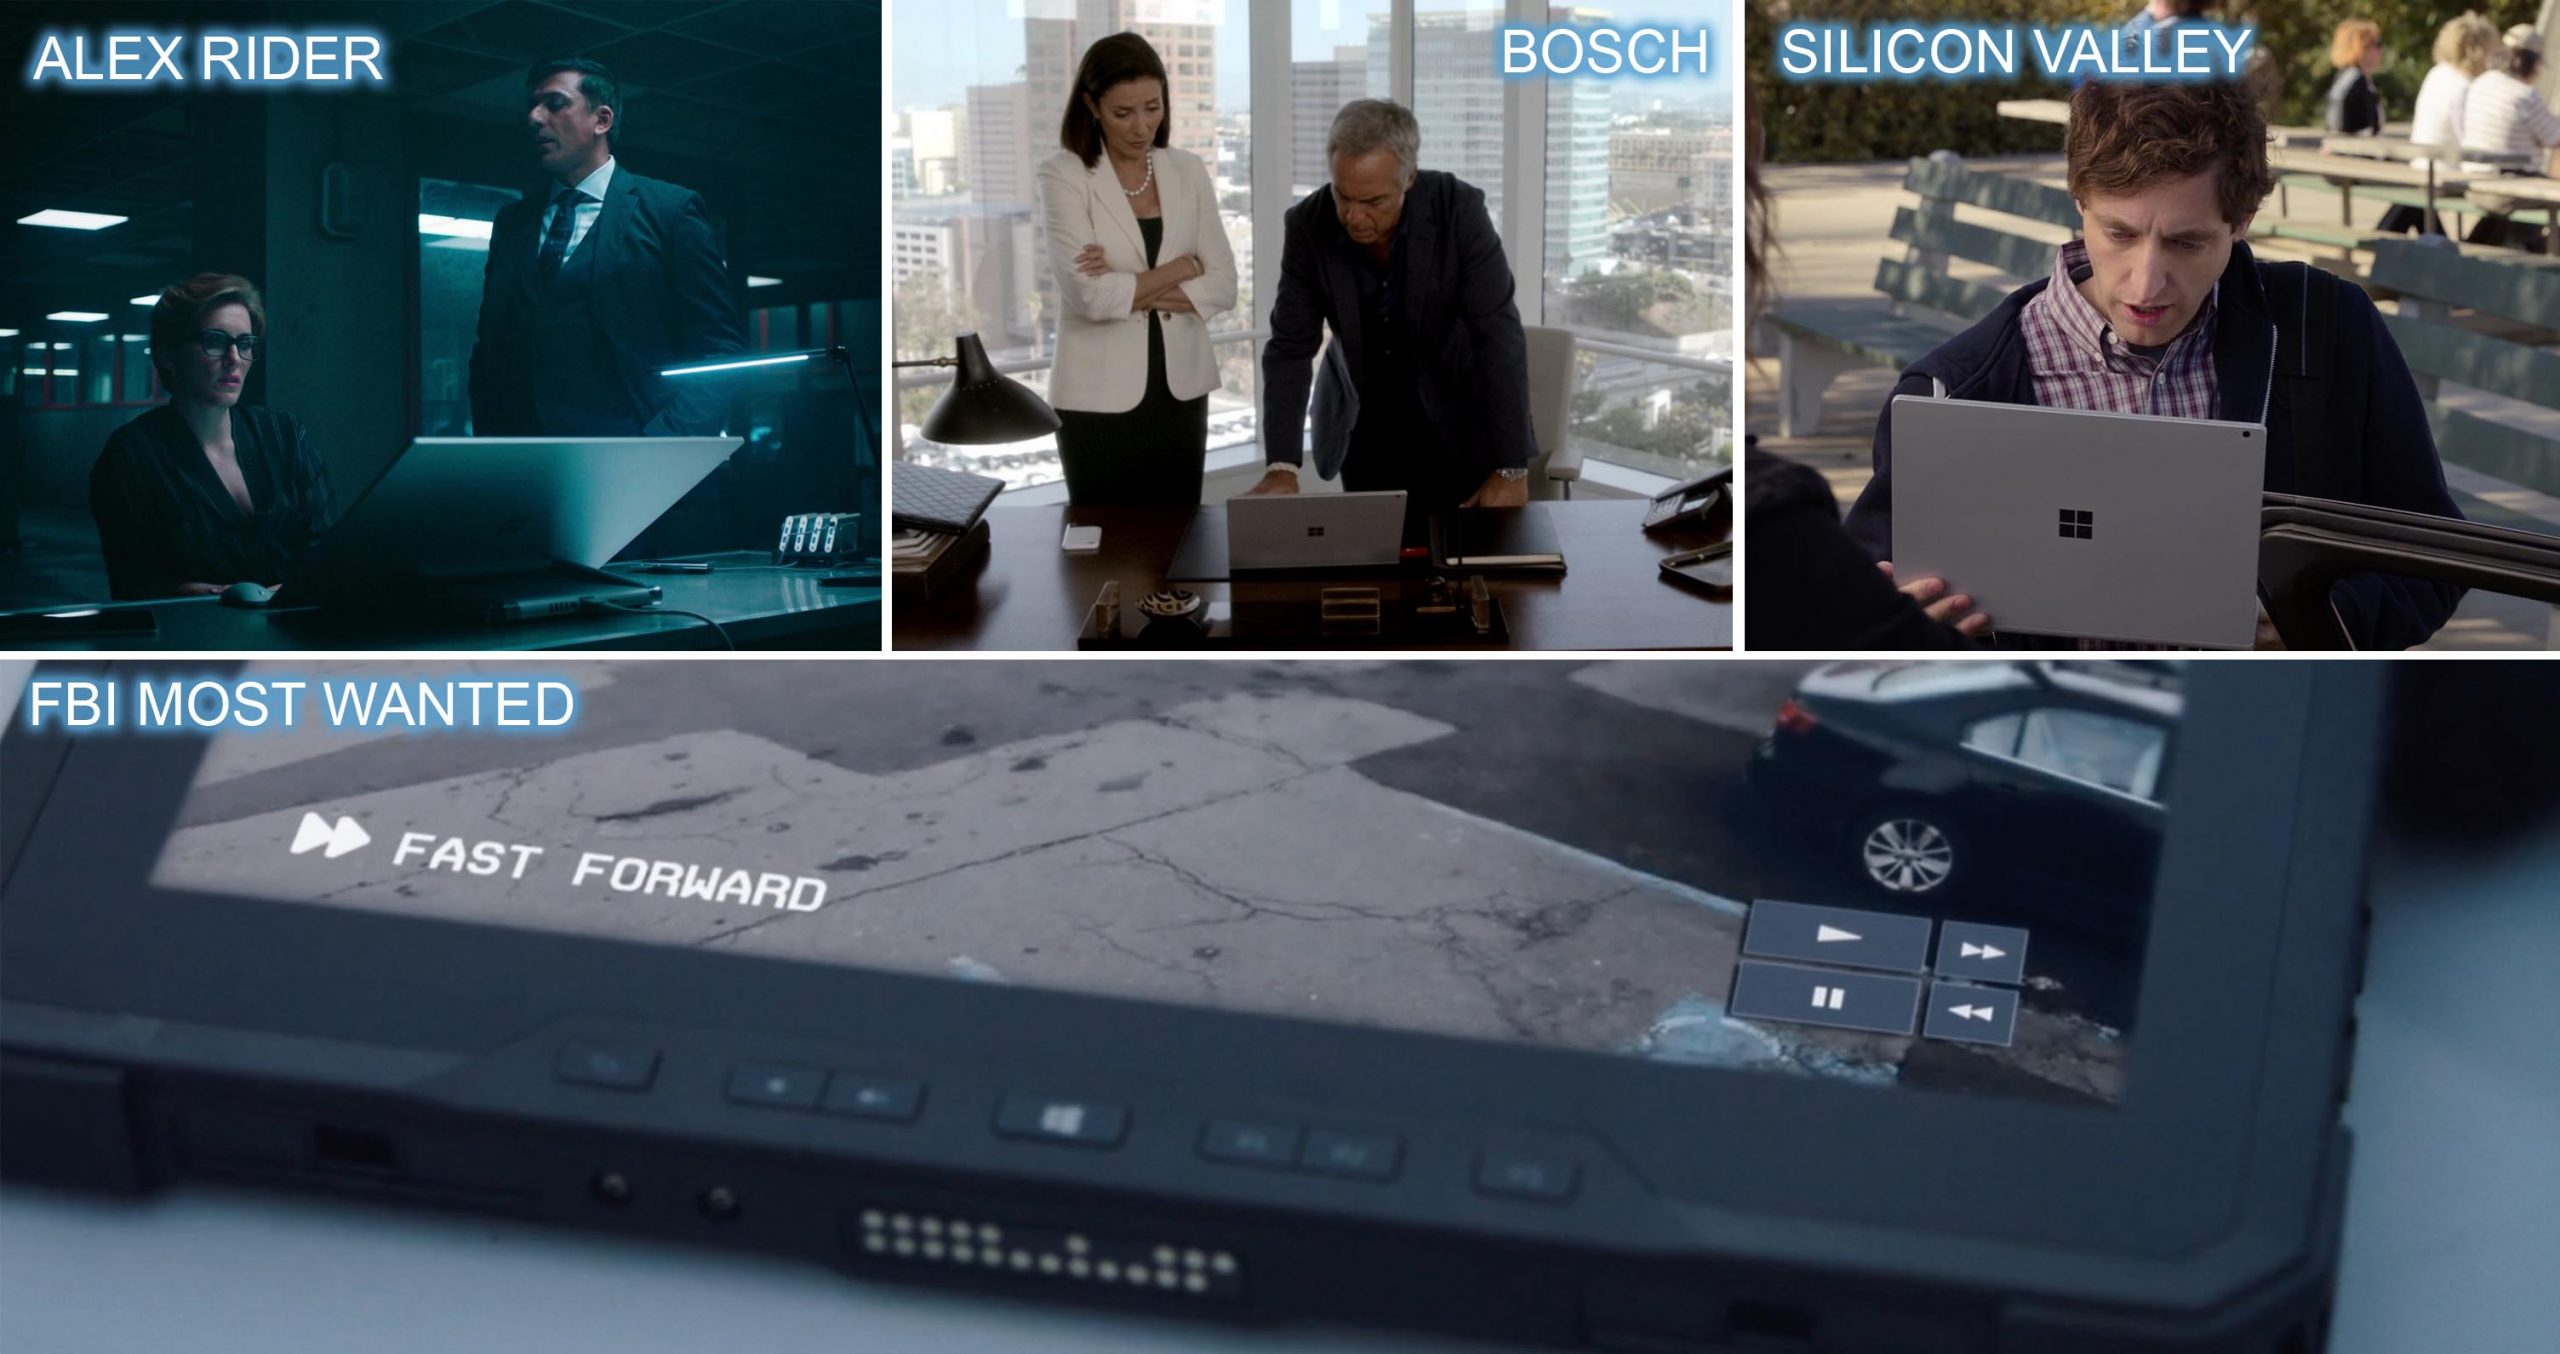 Microsoft product placement ALEX RIDER, BOSCH, SILICON VALLEY and FBI MOST WANTED